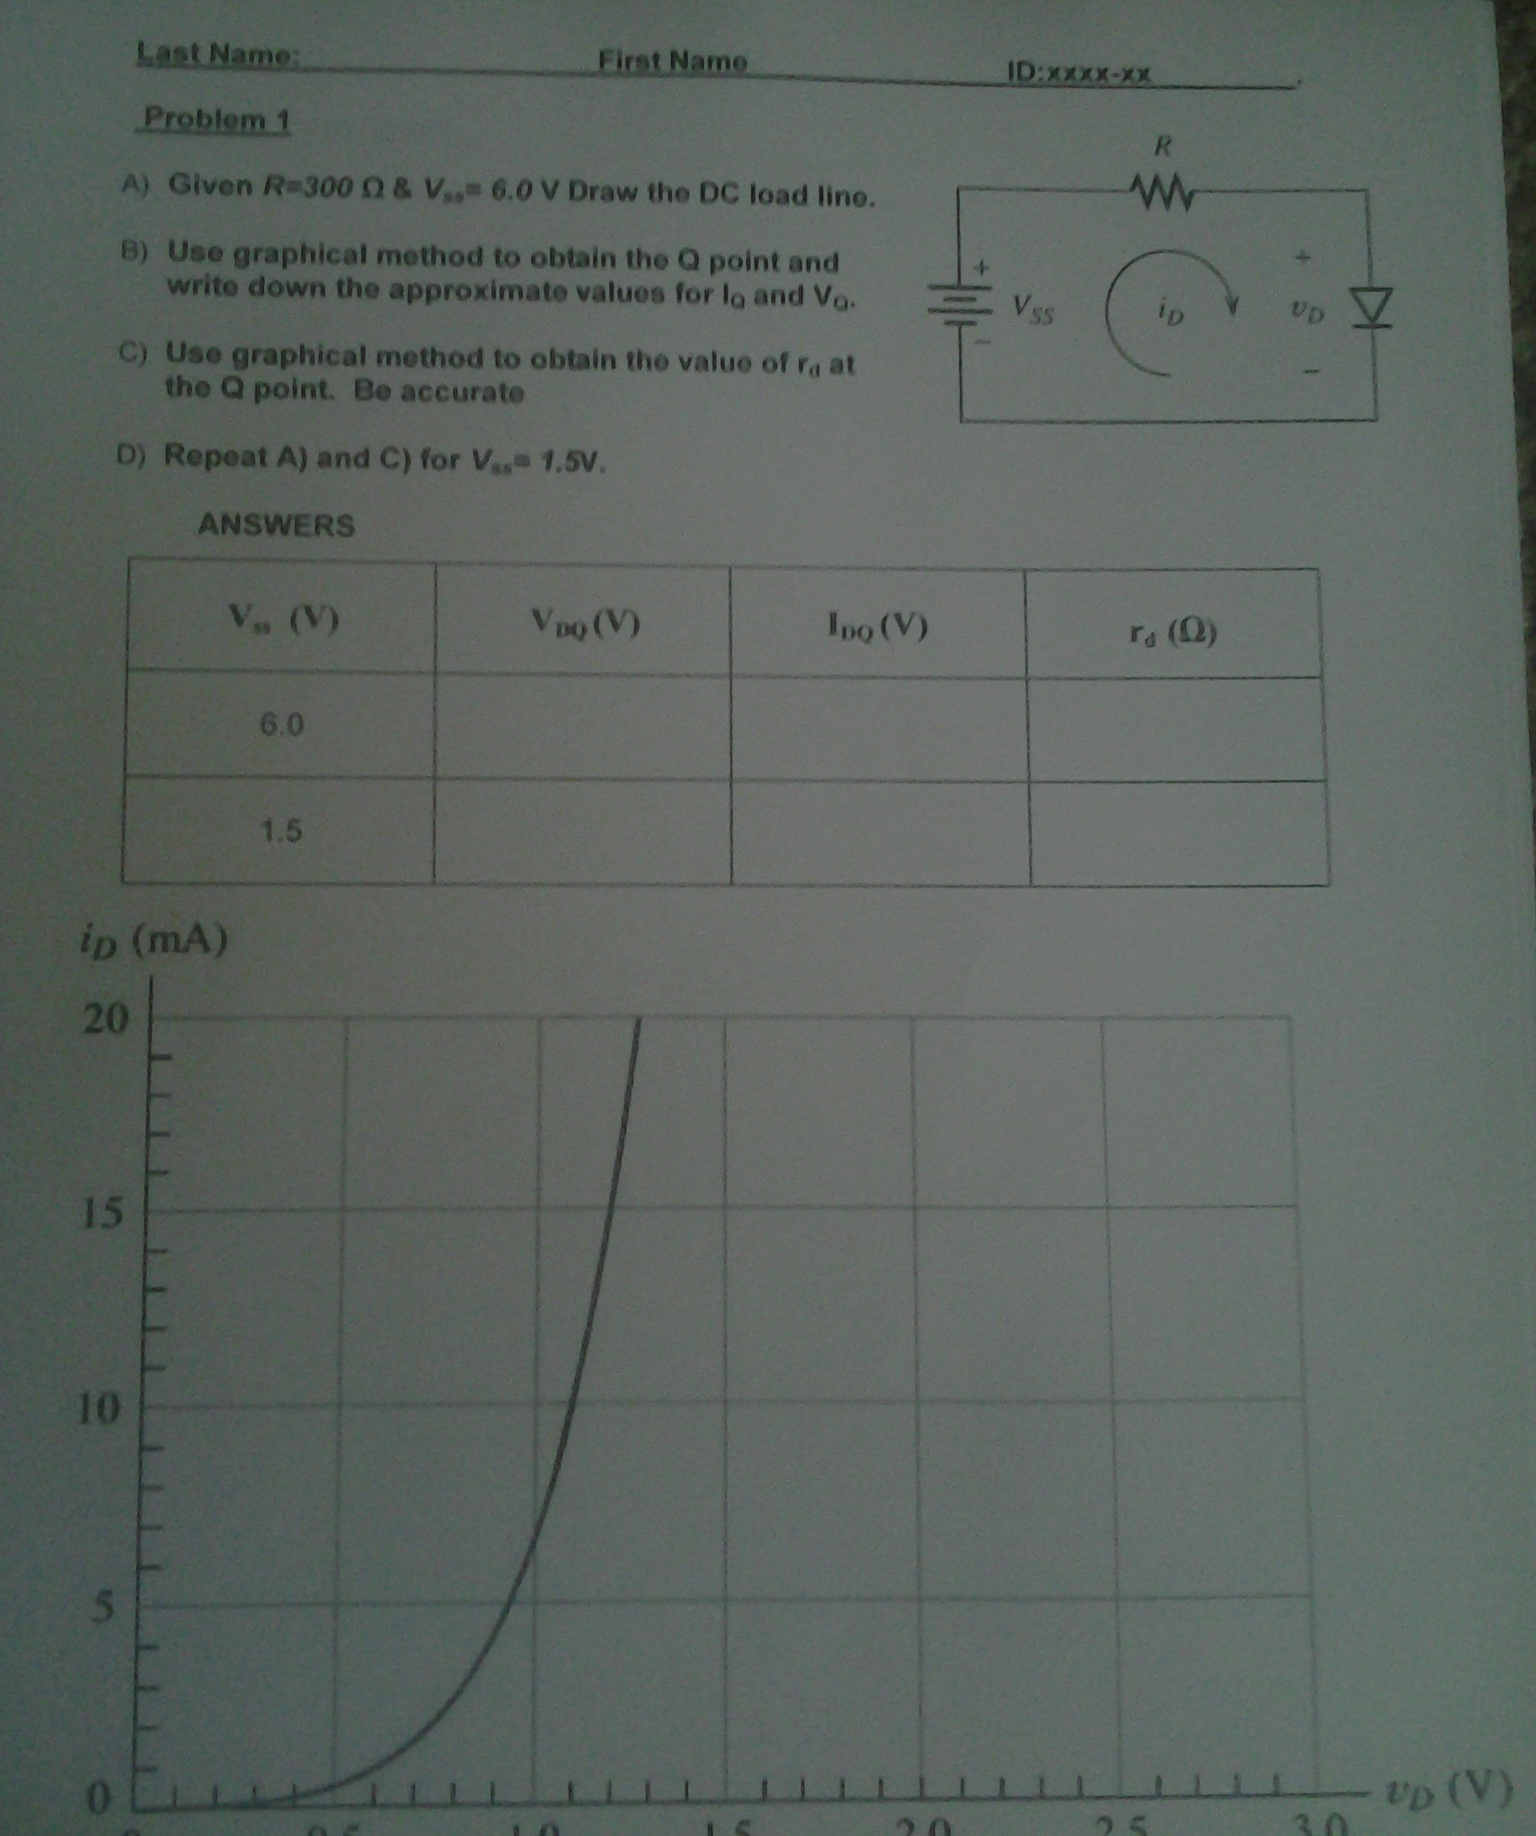 Given R=300 ohm & V = 6.0 V Draw the DC load line.